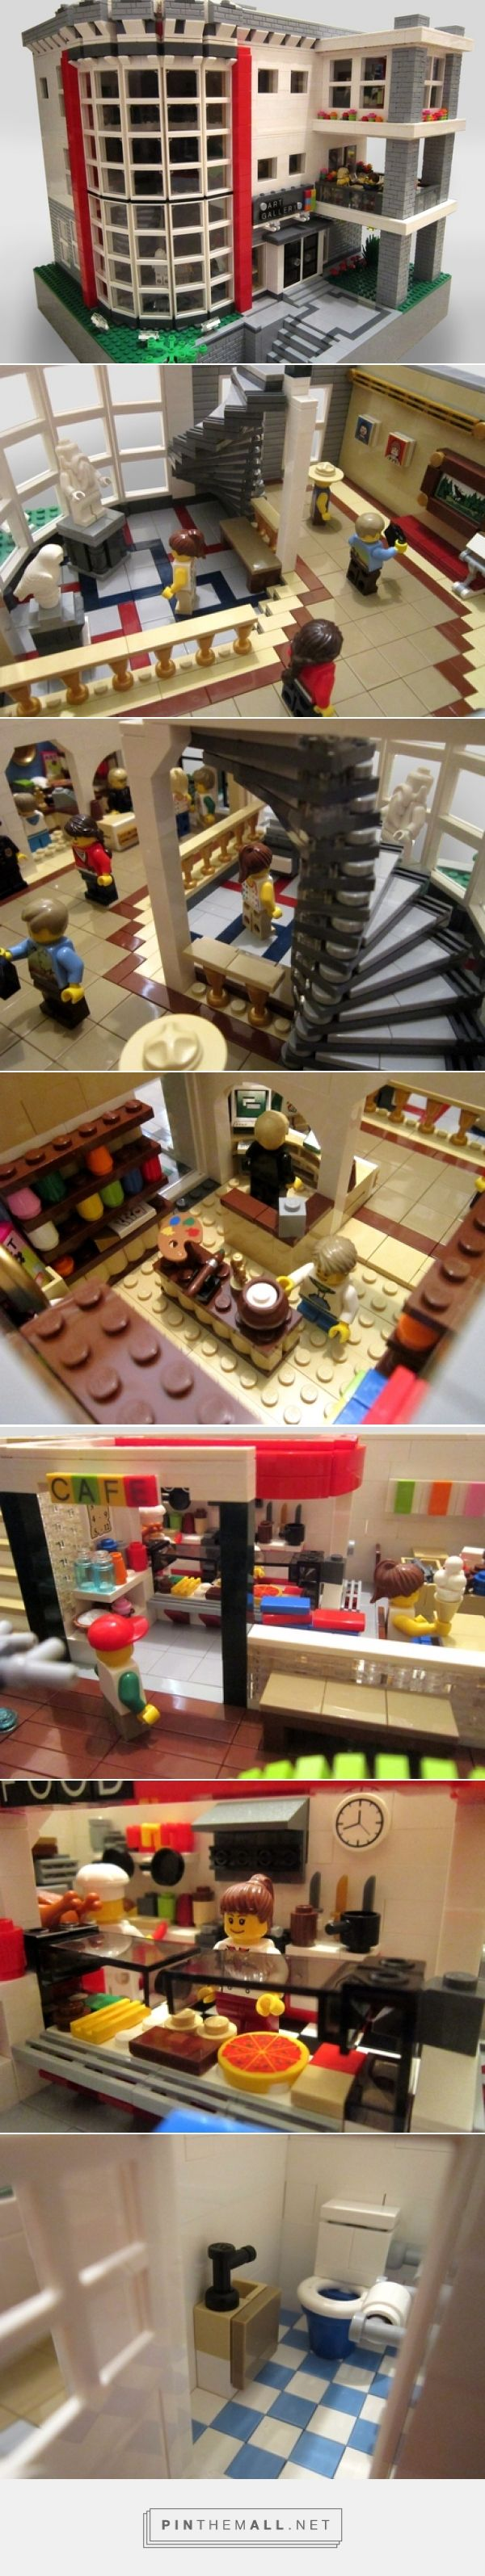 LEGO Ideas -      Art Gallery - created via http://pinthemall.net